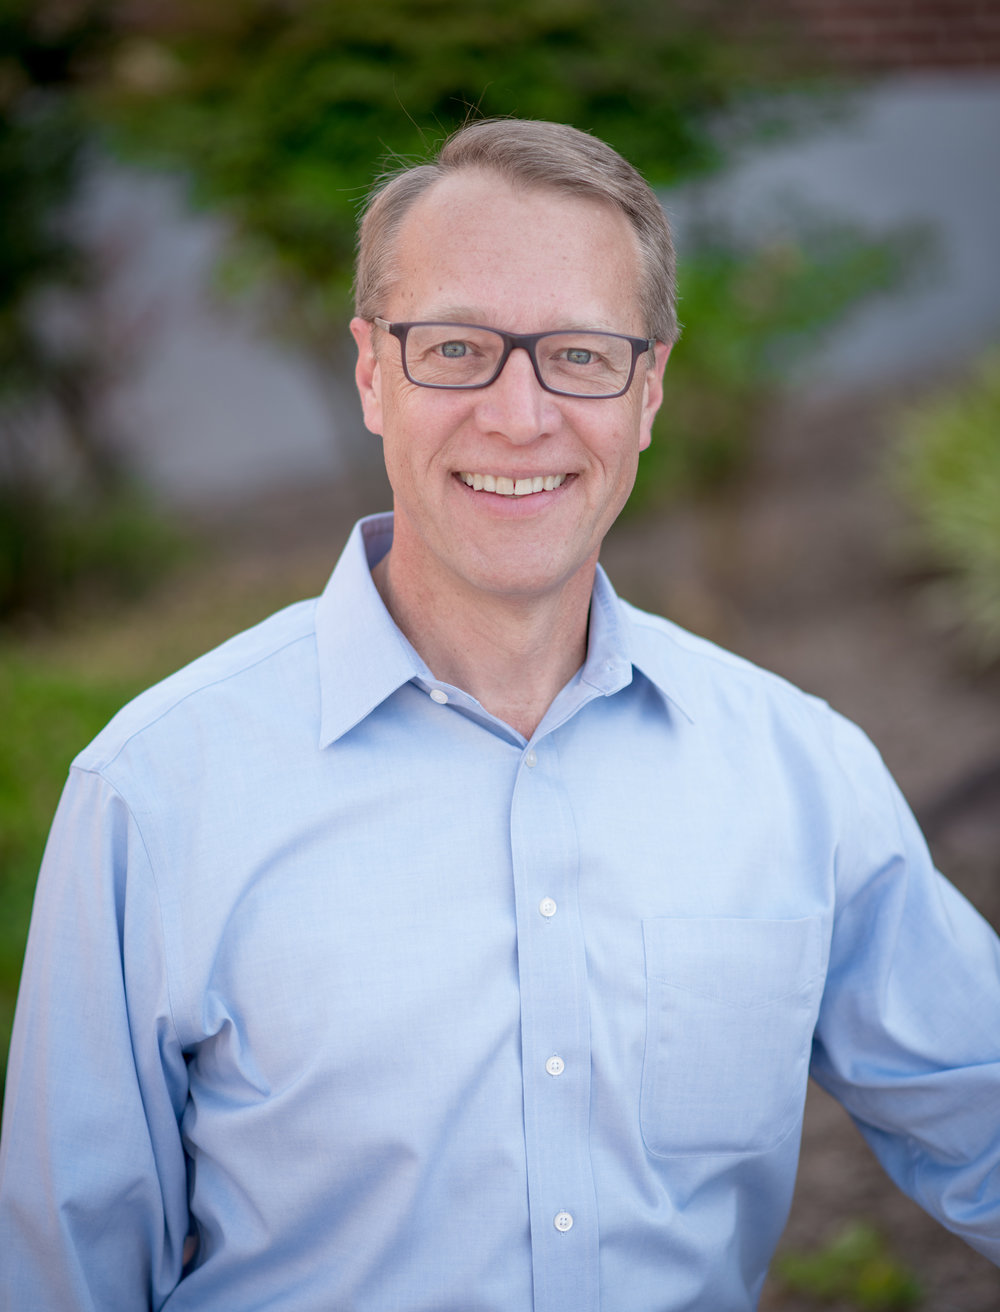 Gray Wirth, MBA, Consultant - The Center Consulting Group - Organizational Consulting and Leadership Coaching for Businesses and Non-Profits